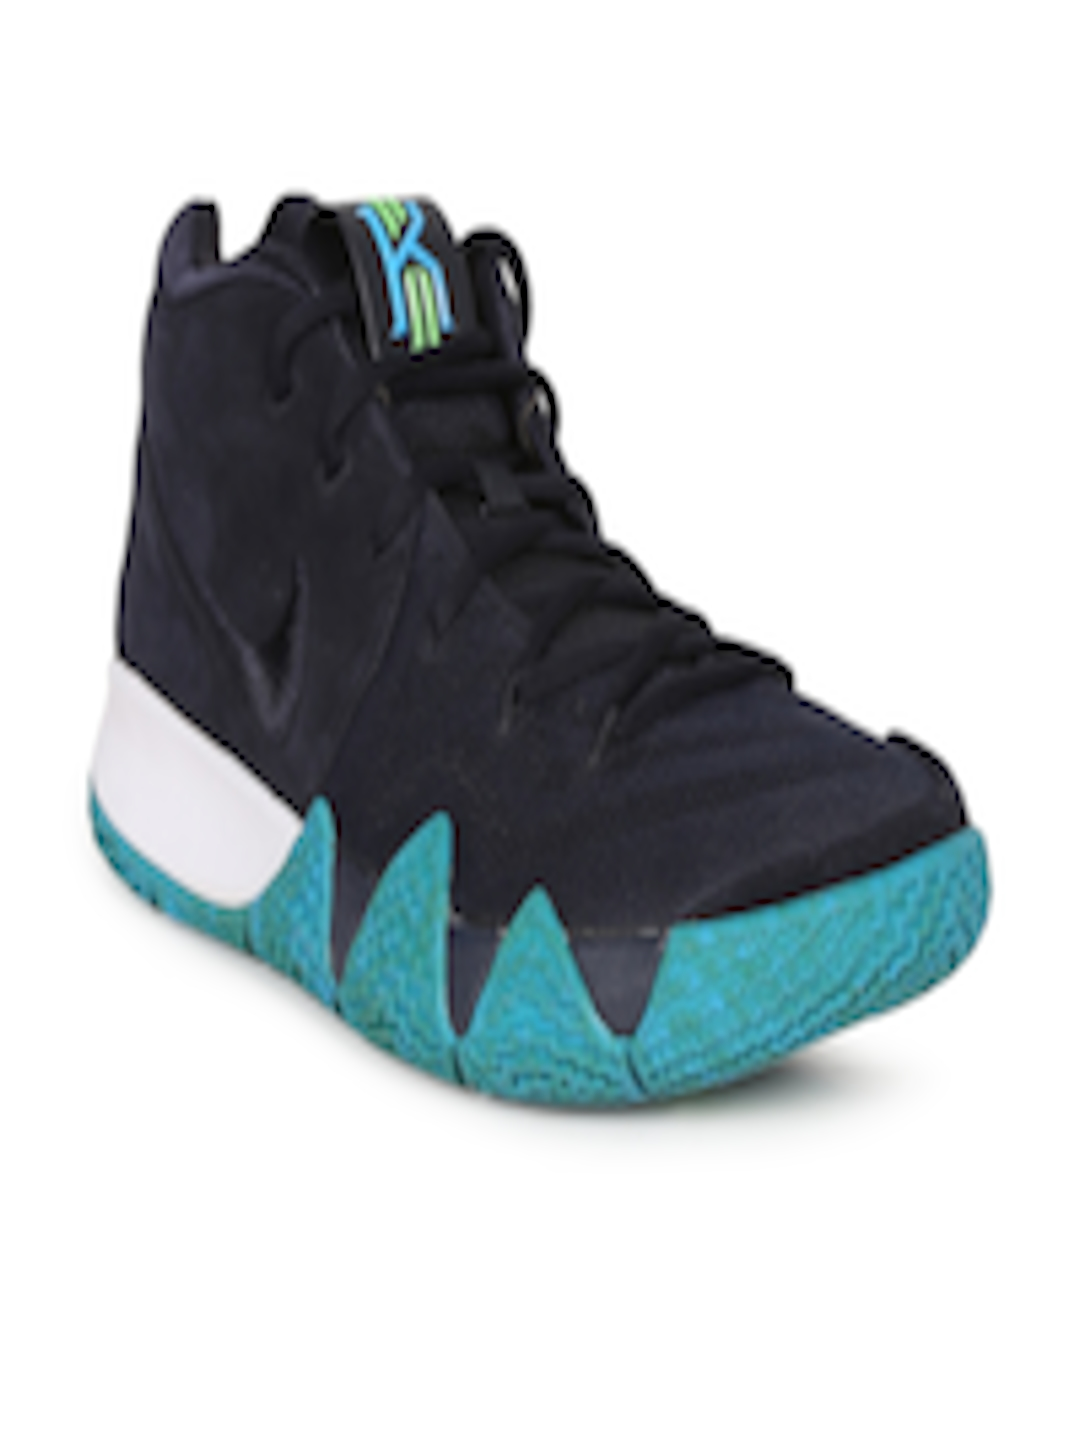 check out 4f0a5 f9413 Buy Nike Men Black Leather Kyrie 4 Basketball Shoes - - Footwear for Men